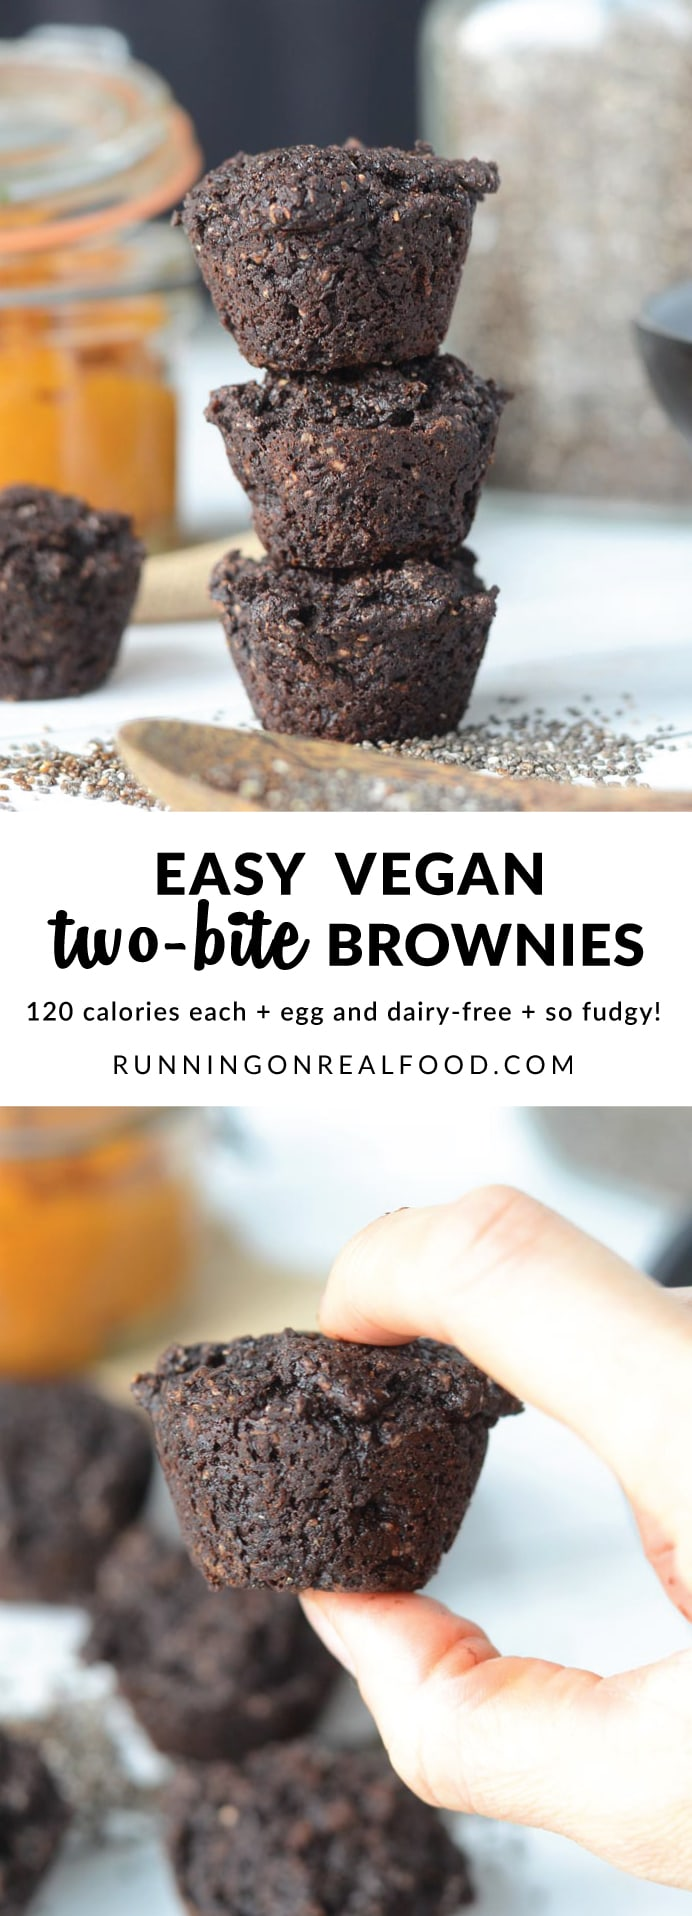 These tasty vegan two bite brownies have a secret healthy ingredient that keeps them moist! They're rich and dense with an amazing fudgy texture, no eggs or dairy needed!